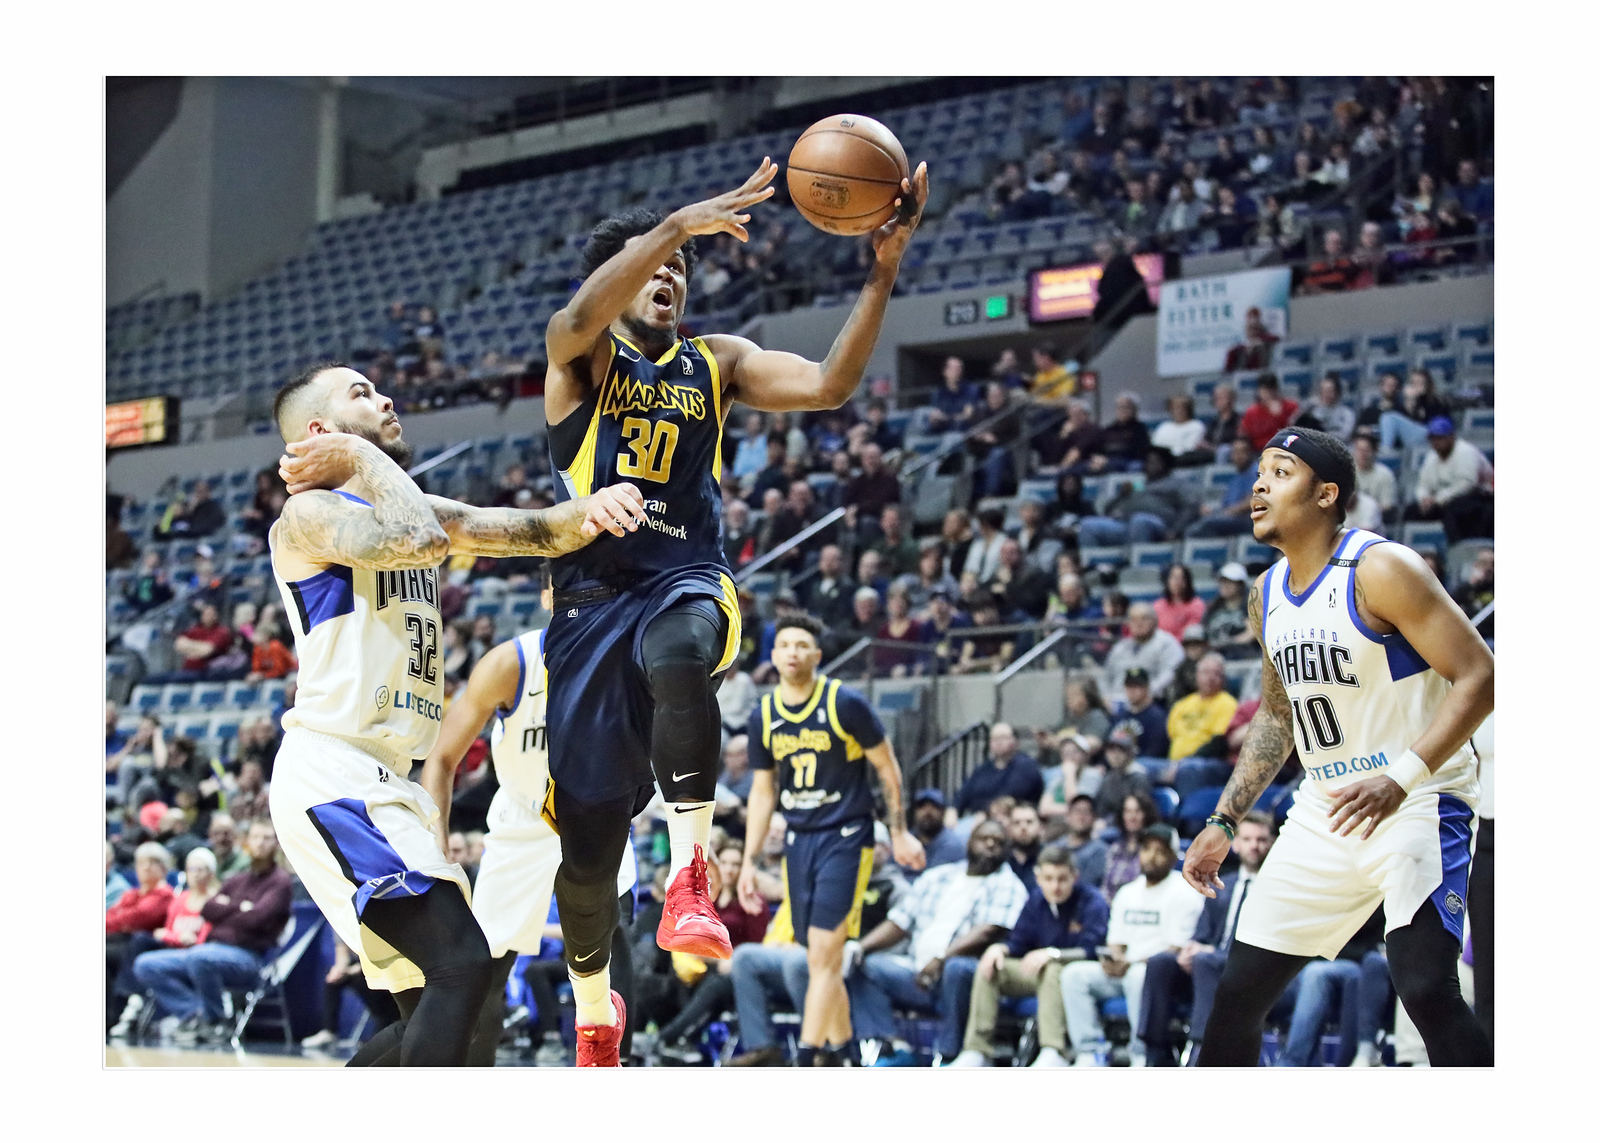 IMAGE: https://photos.smugmug.com/Sports-Events/Mad-Ants-Current-Season/Mar-8-2019/i-VsfbLf8/0/bc72425d/X3/FX8A9437a-X3.jpg